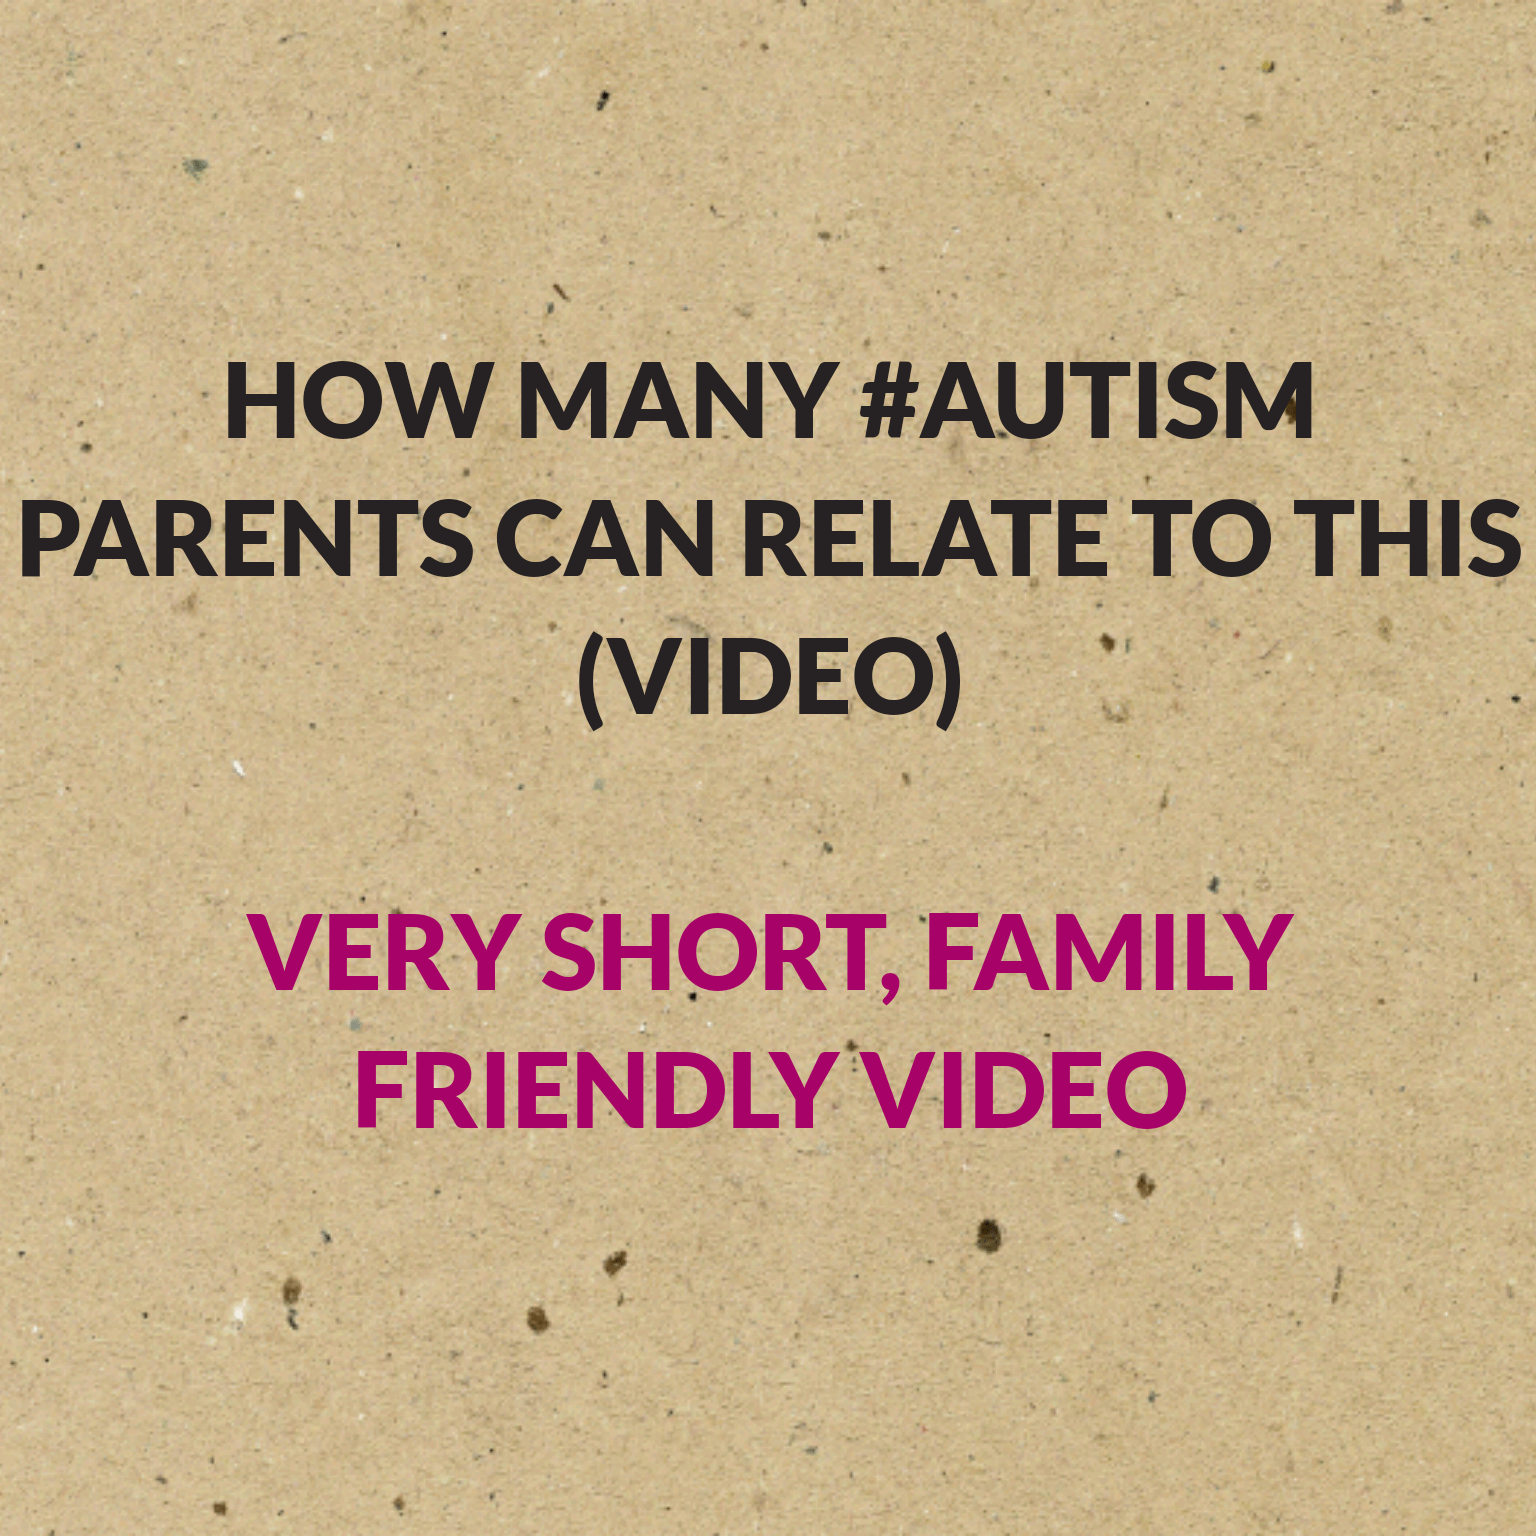 How many #Autism Parents can relate to this (video)